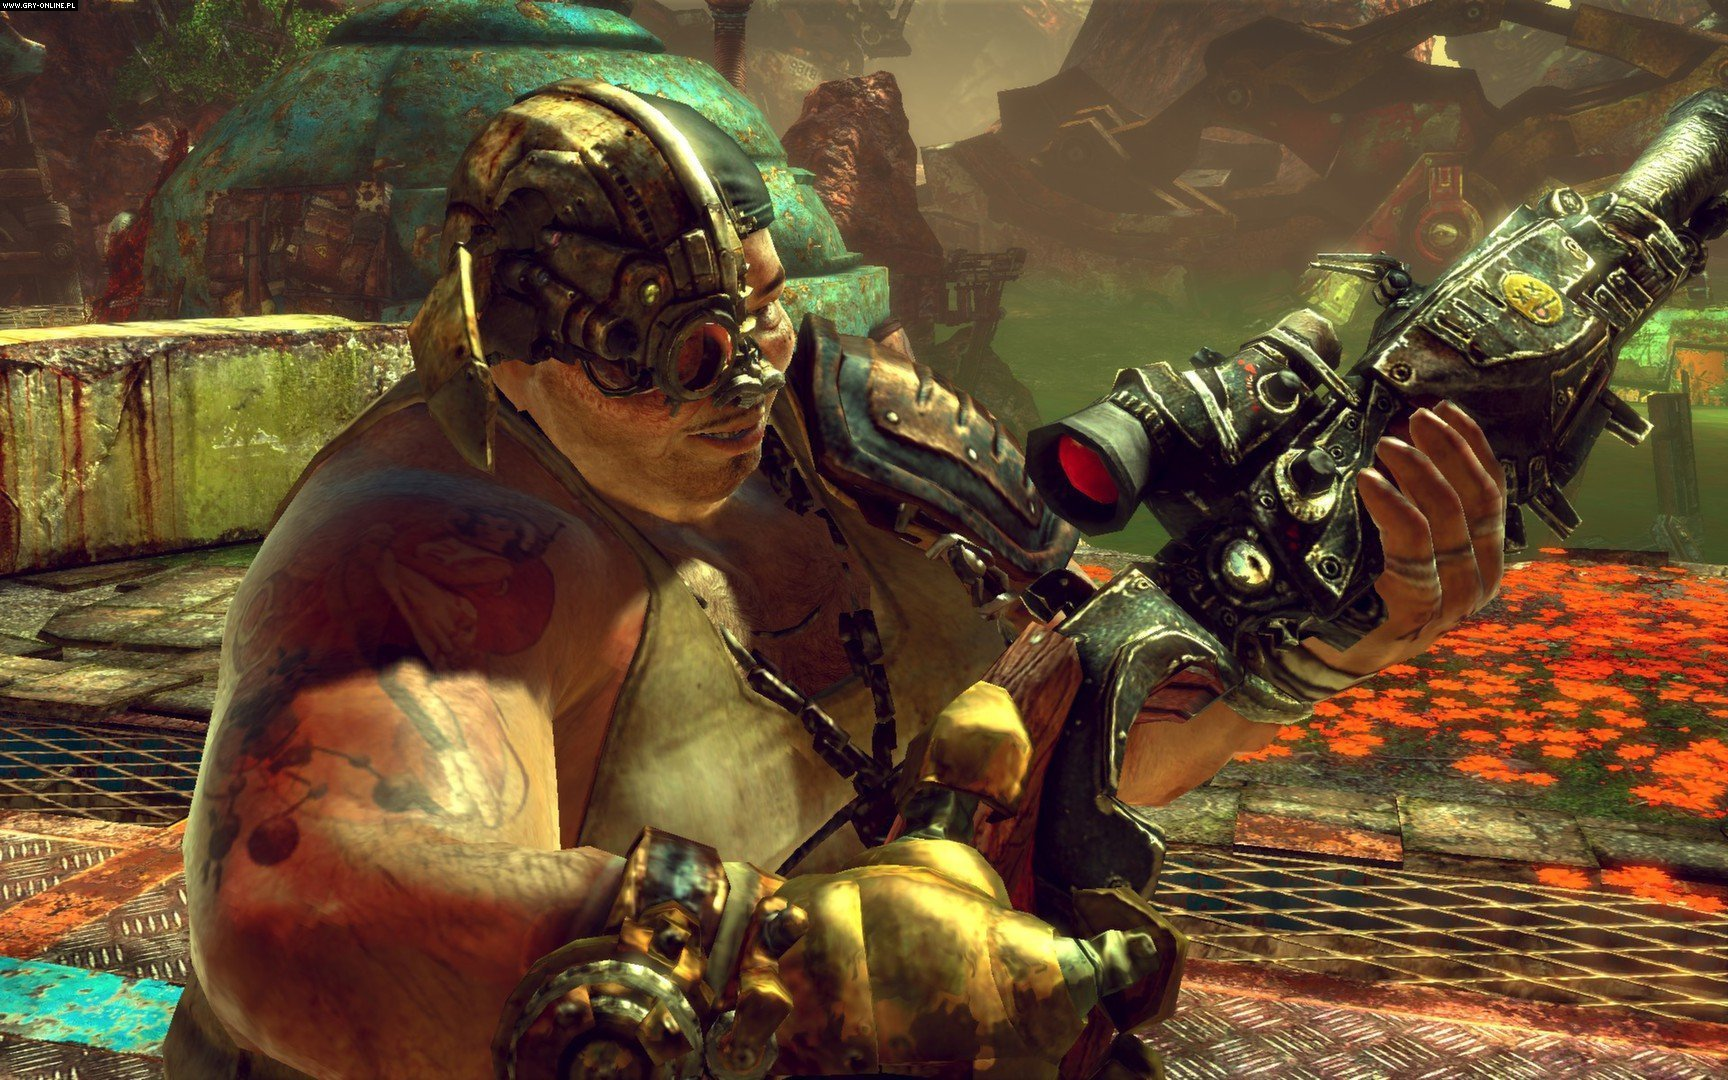 Enslaved: Odyssey to the West PC Games Image 3/164, Ninja Theory, Bandai Namco Entertainment